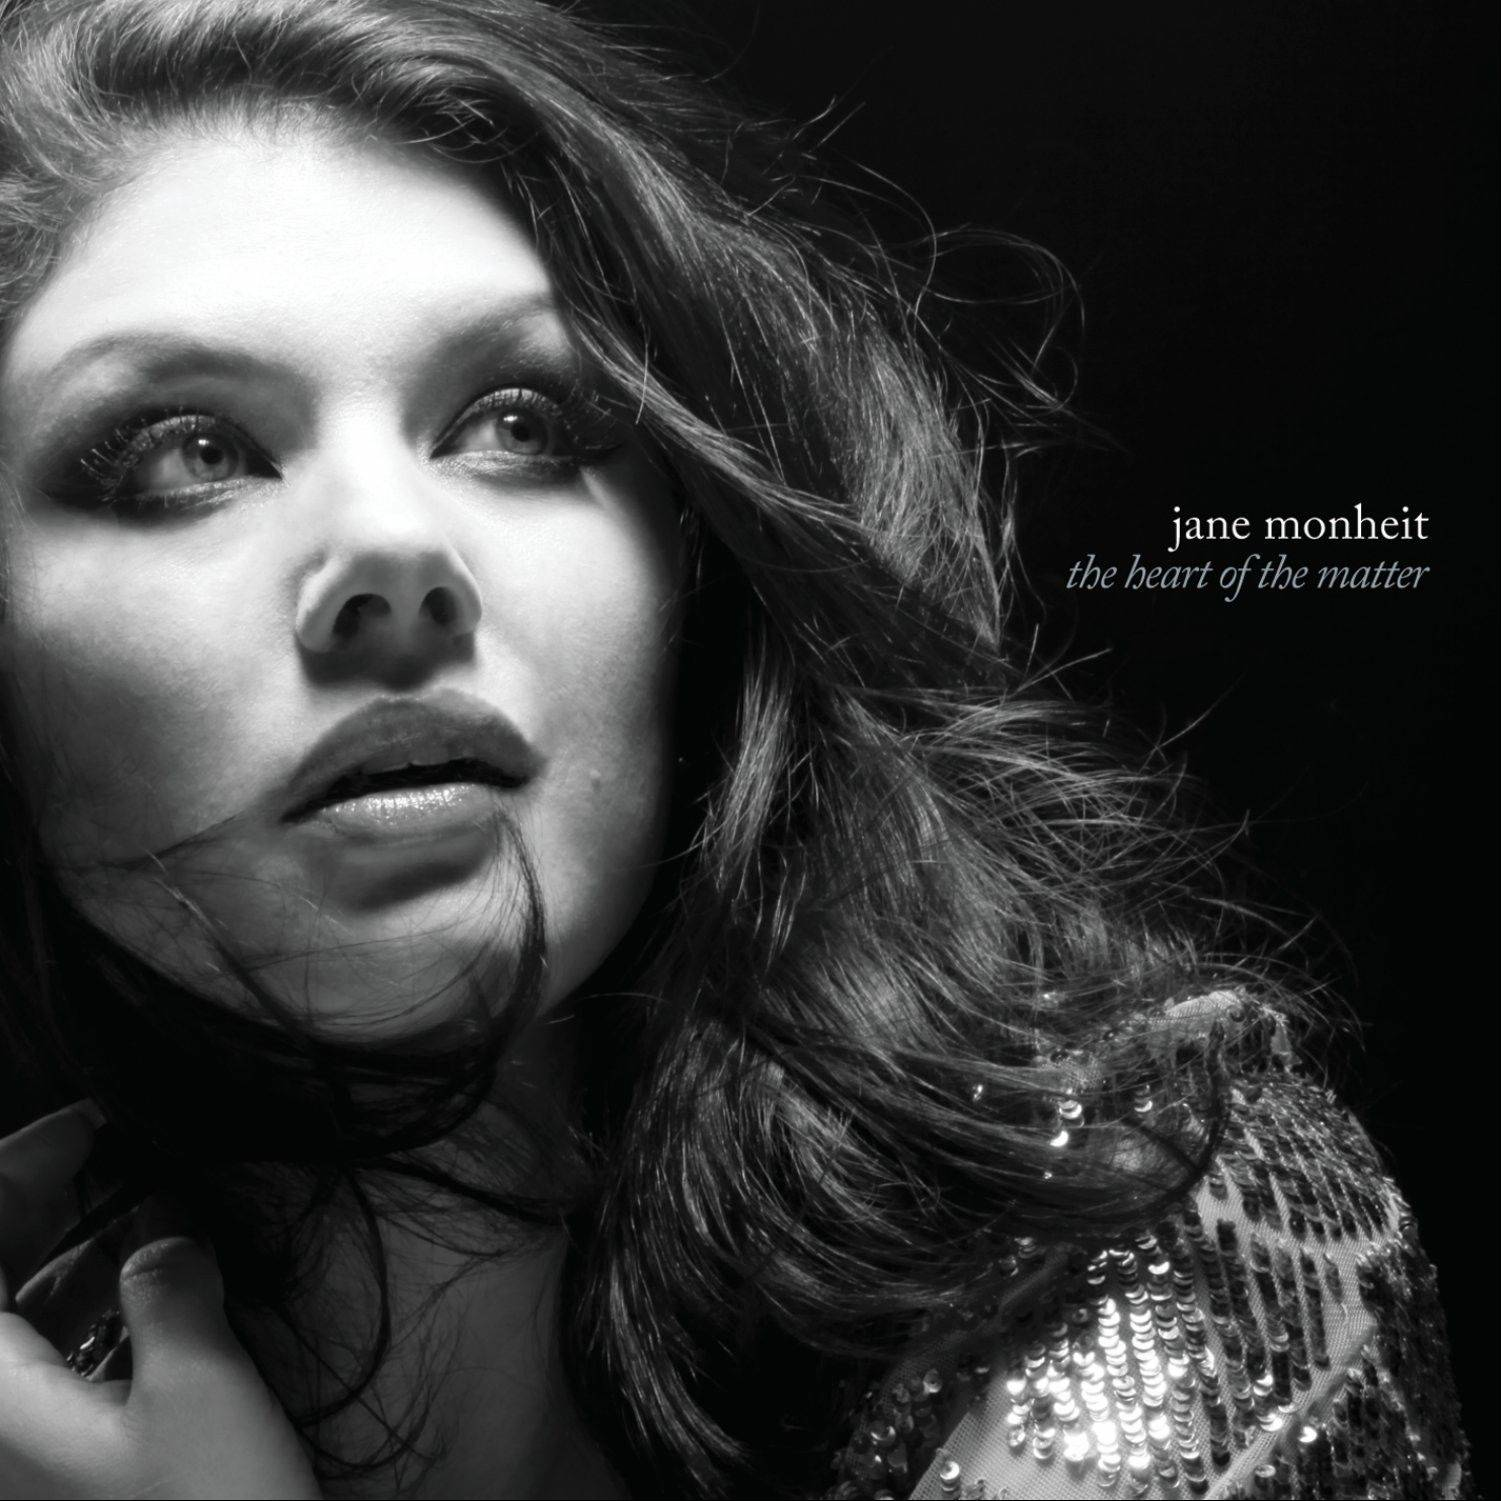 """The Heart of the Matter"" by Jane Monheit"